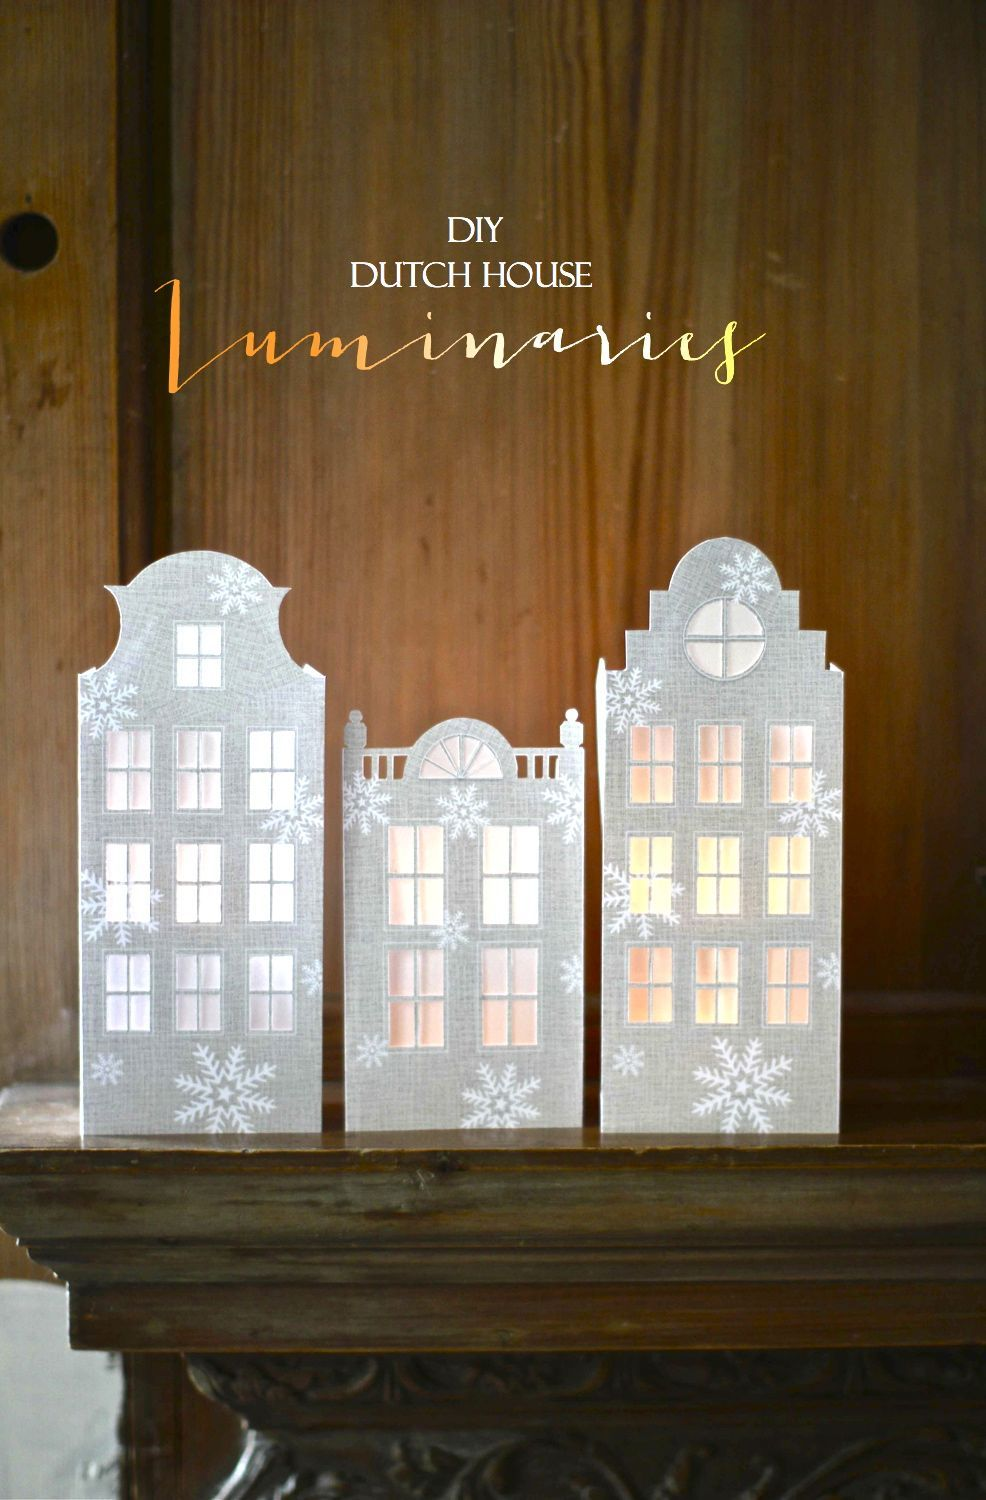 Holidaywinter paper crafts diy dutch house luminaries tutorial holidaywinter paper crafts diy dutch house luminaries tutorial and printable templates jeuxipadfo Images